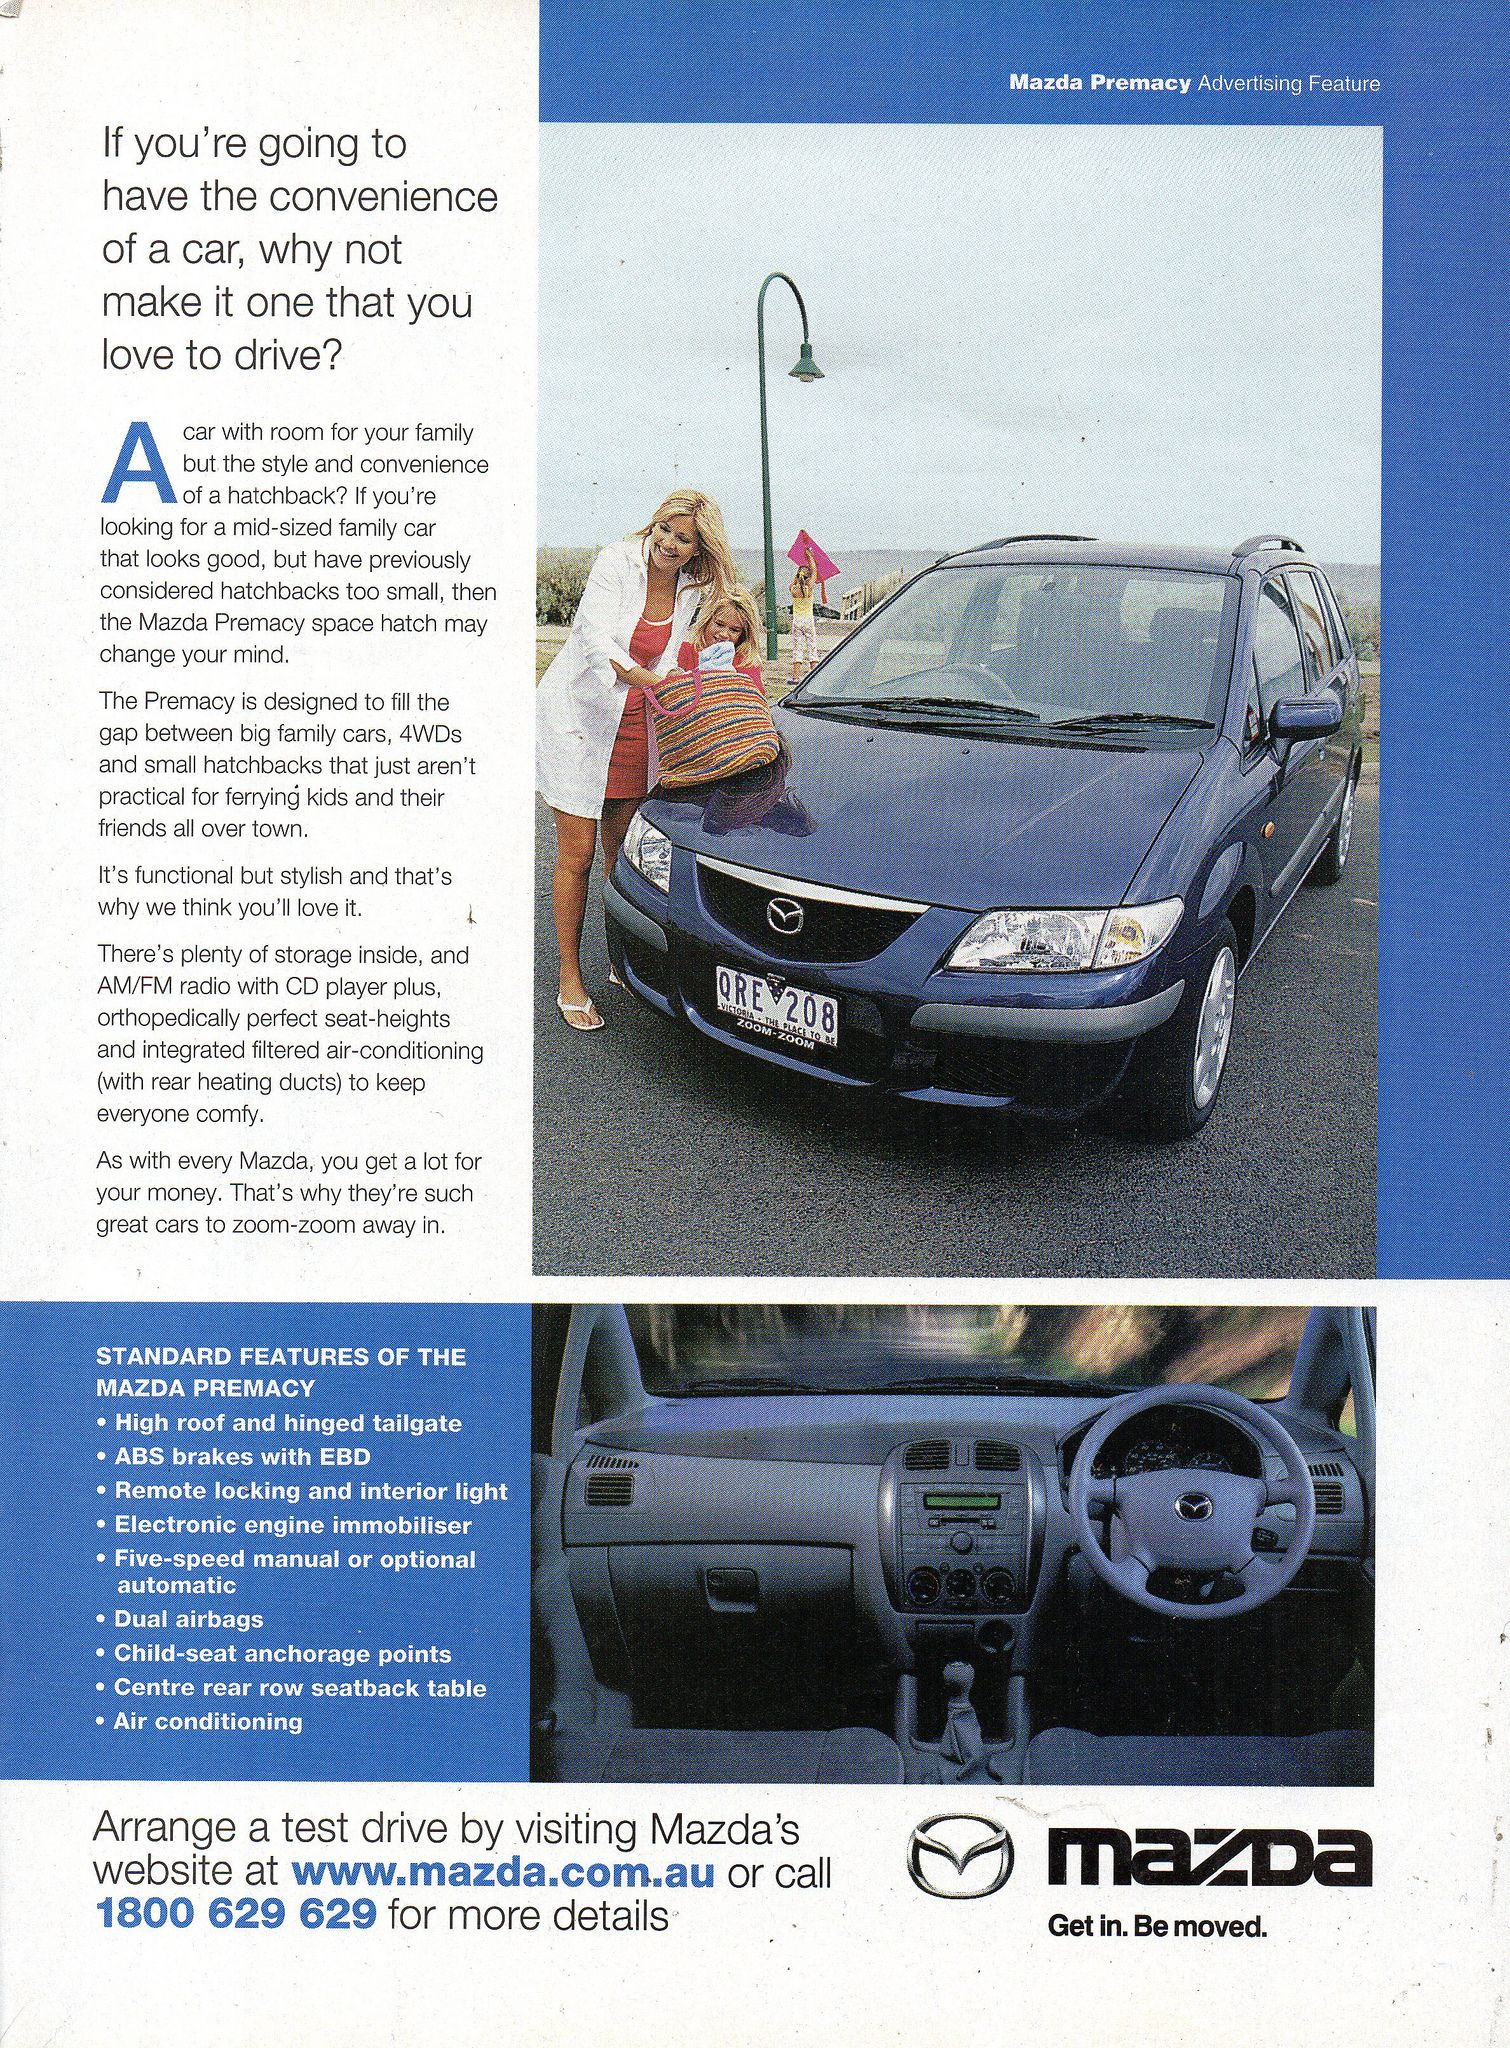 2001 Mazda Premacy Compact Mpv Page 2 Aussie Original Magazine Advertisement Automobile Advertising Mazda Car Advertising